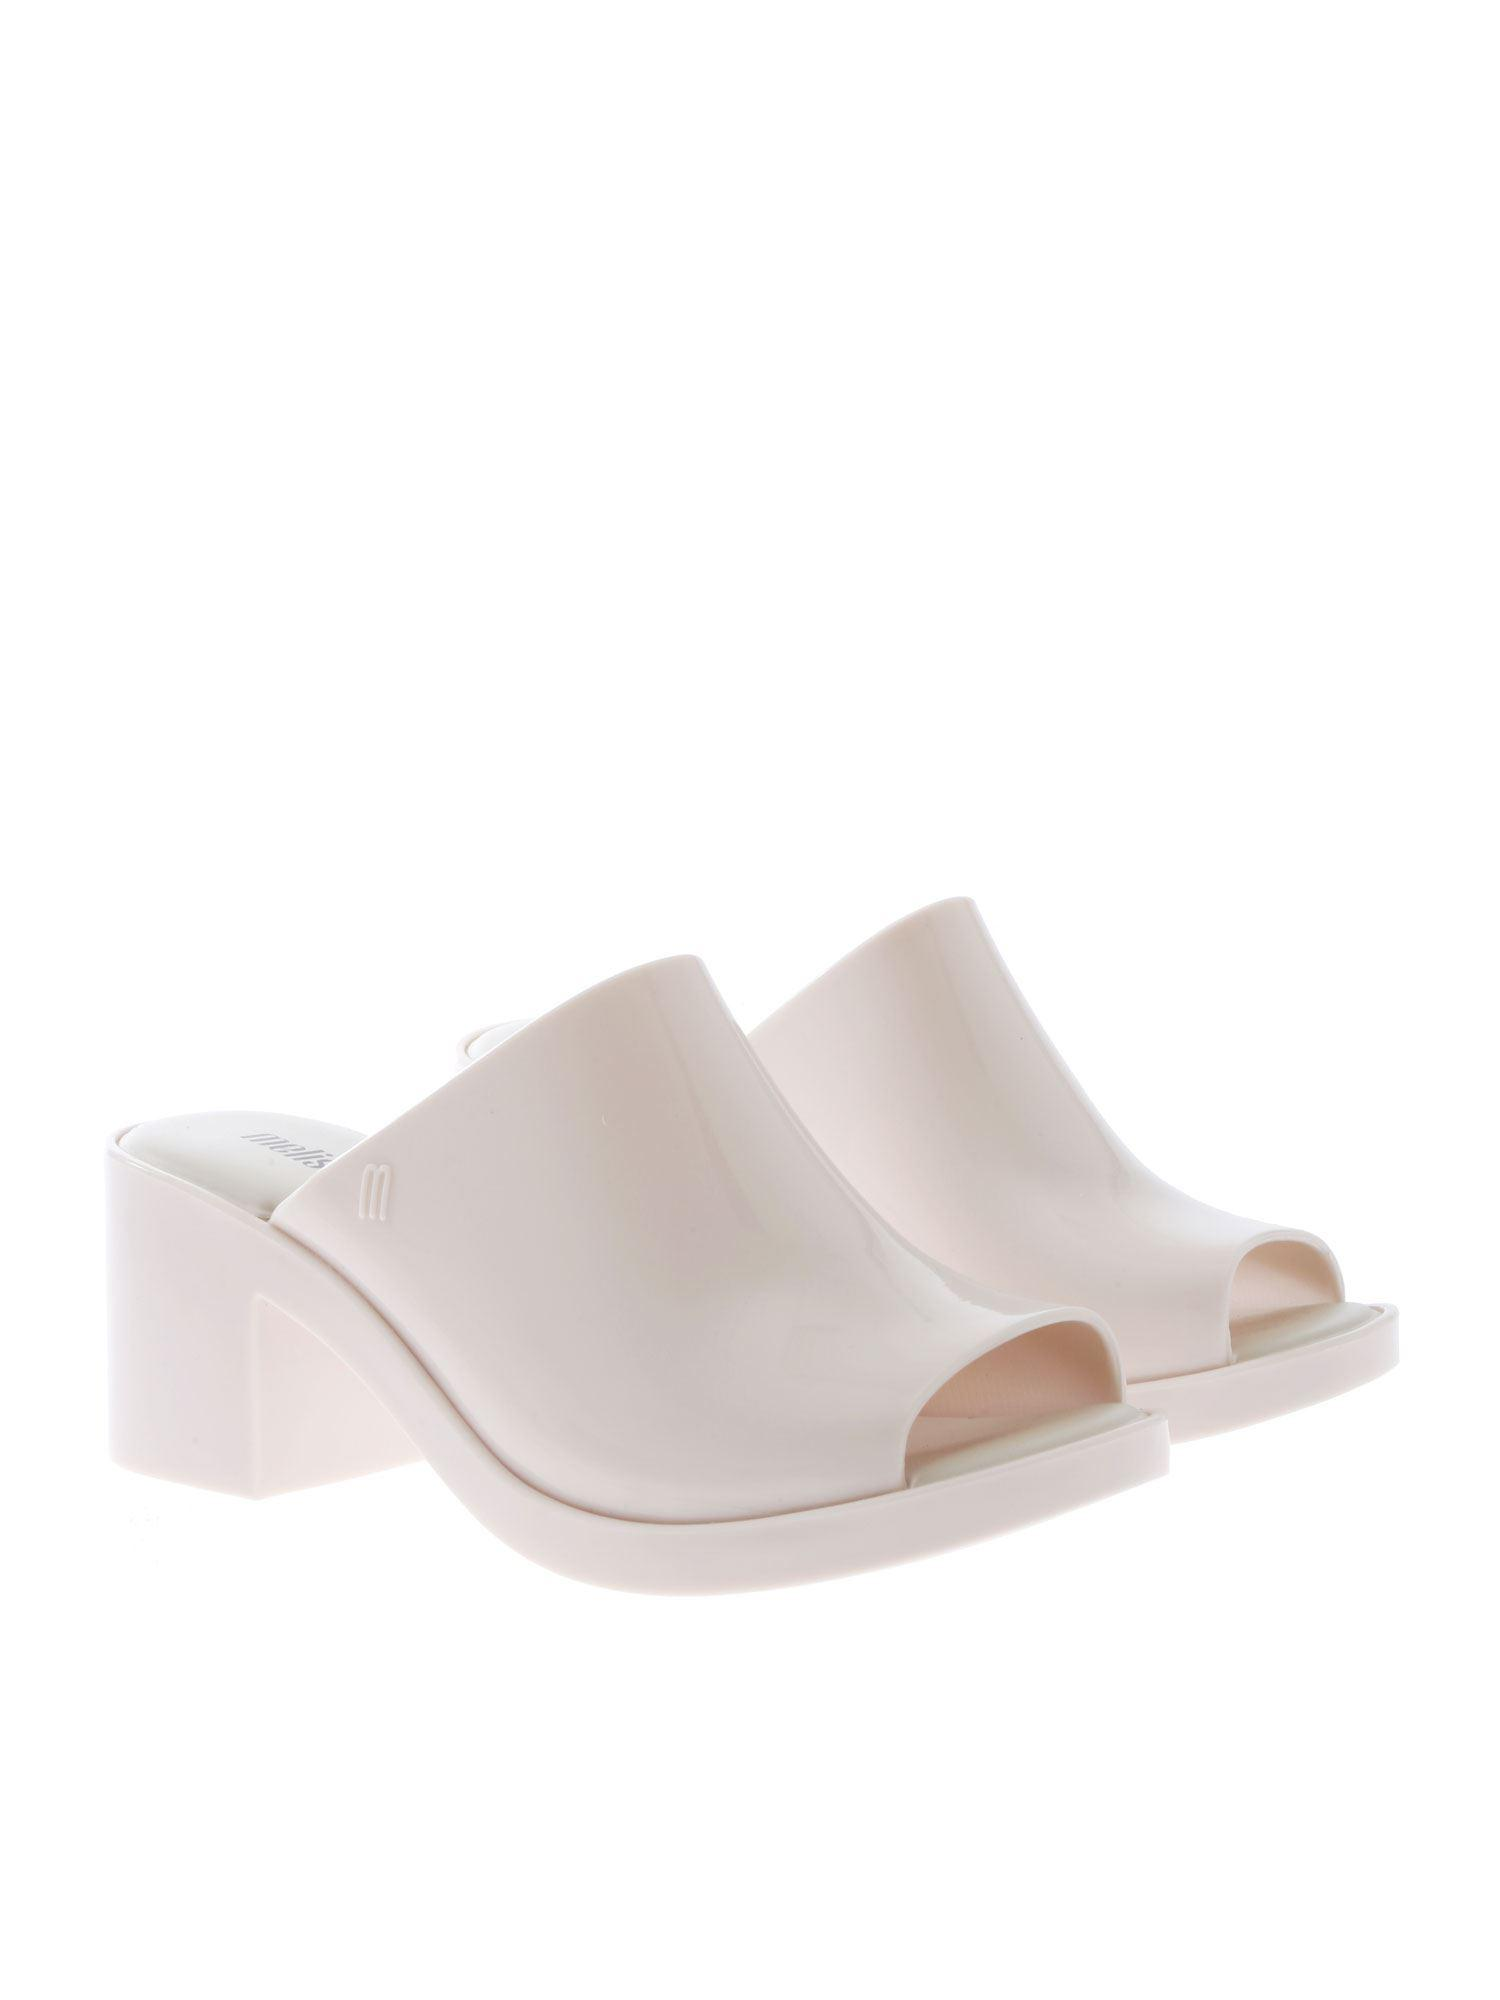 cb866c5c0644 Lyst - Melissa White Mule Ii Sandals in White